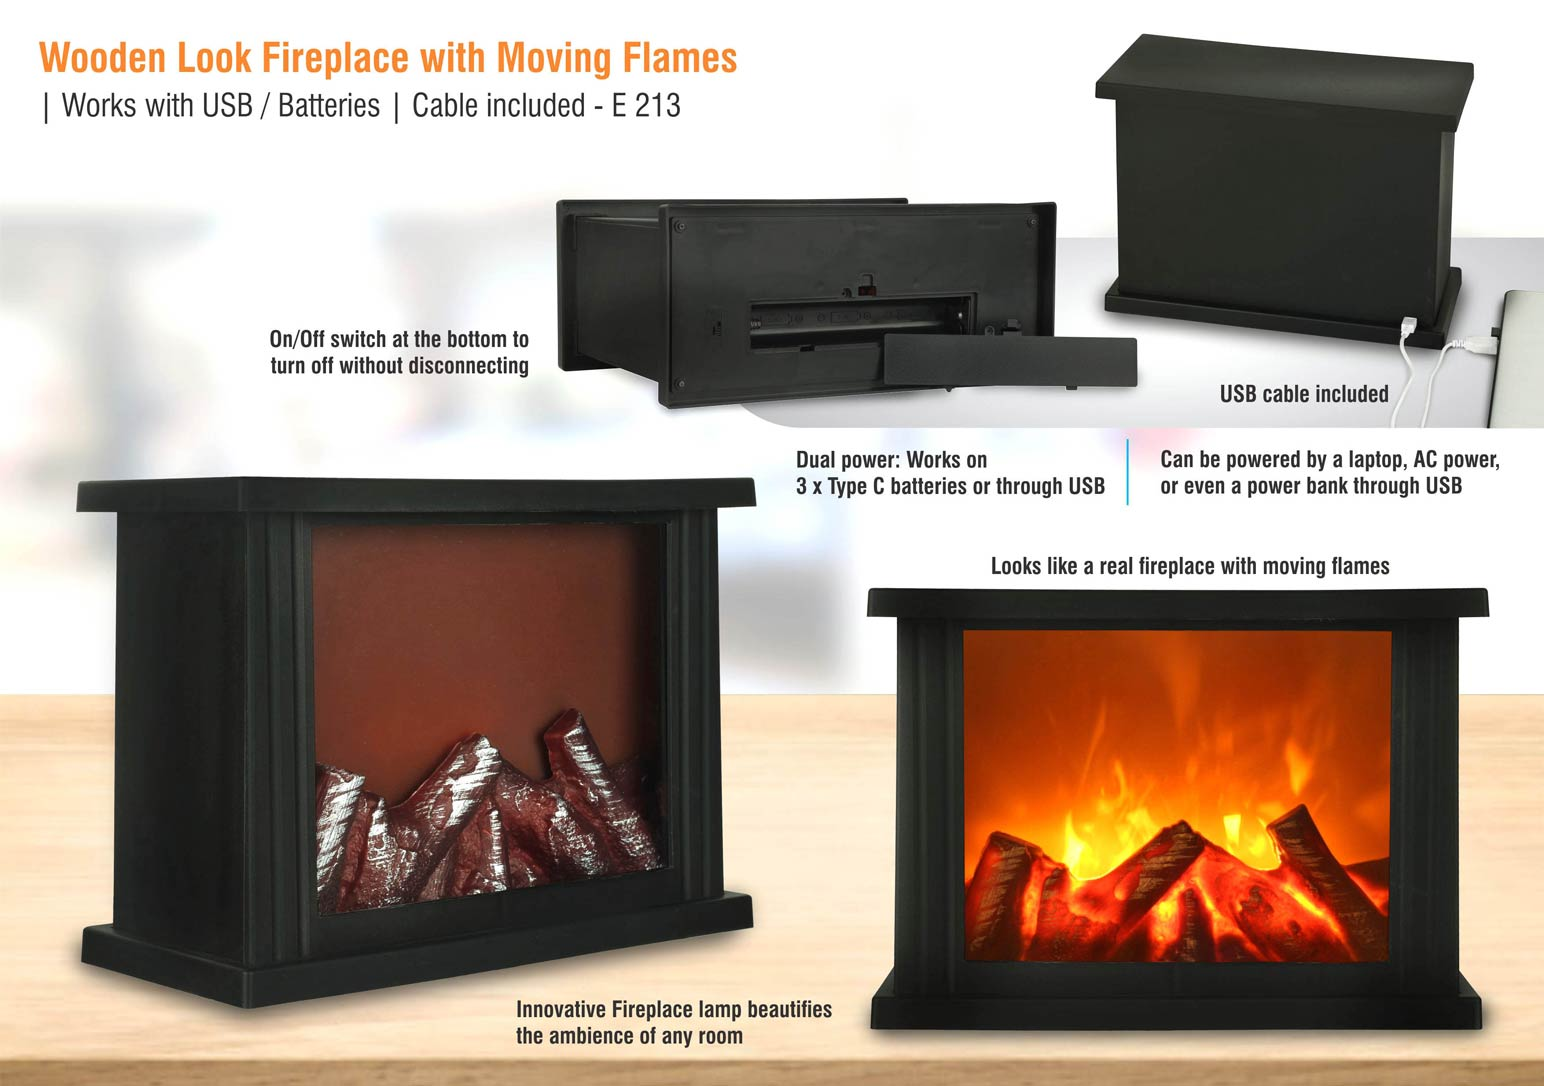 E213 - Wooden look Fireplace with moving flames | Works with USB / Batteries | Cable included